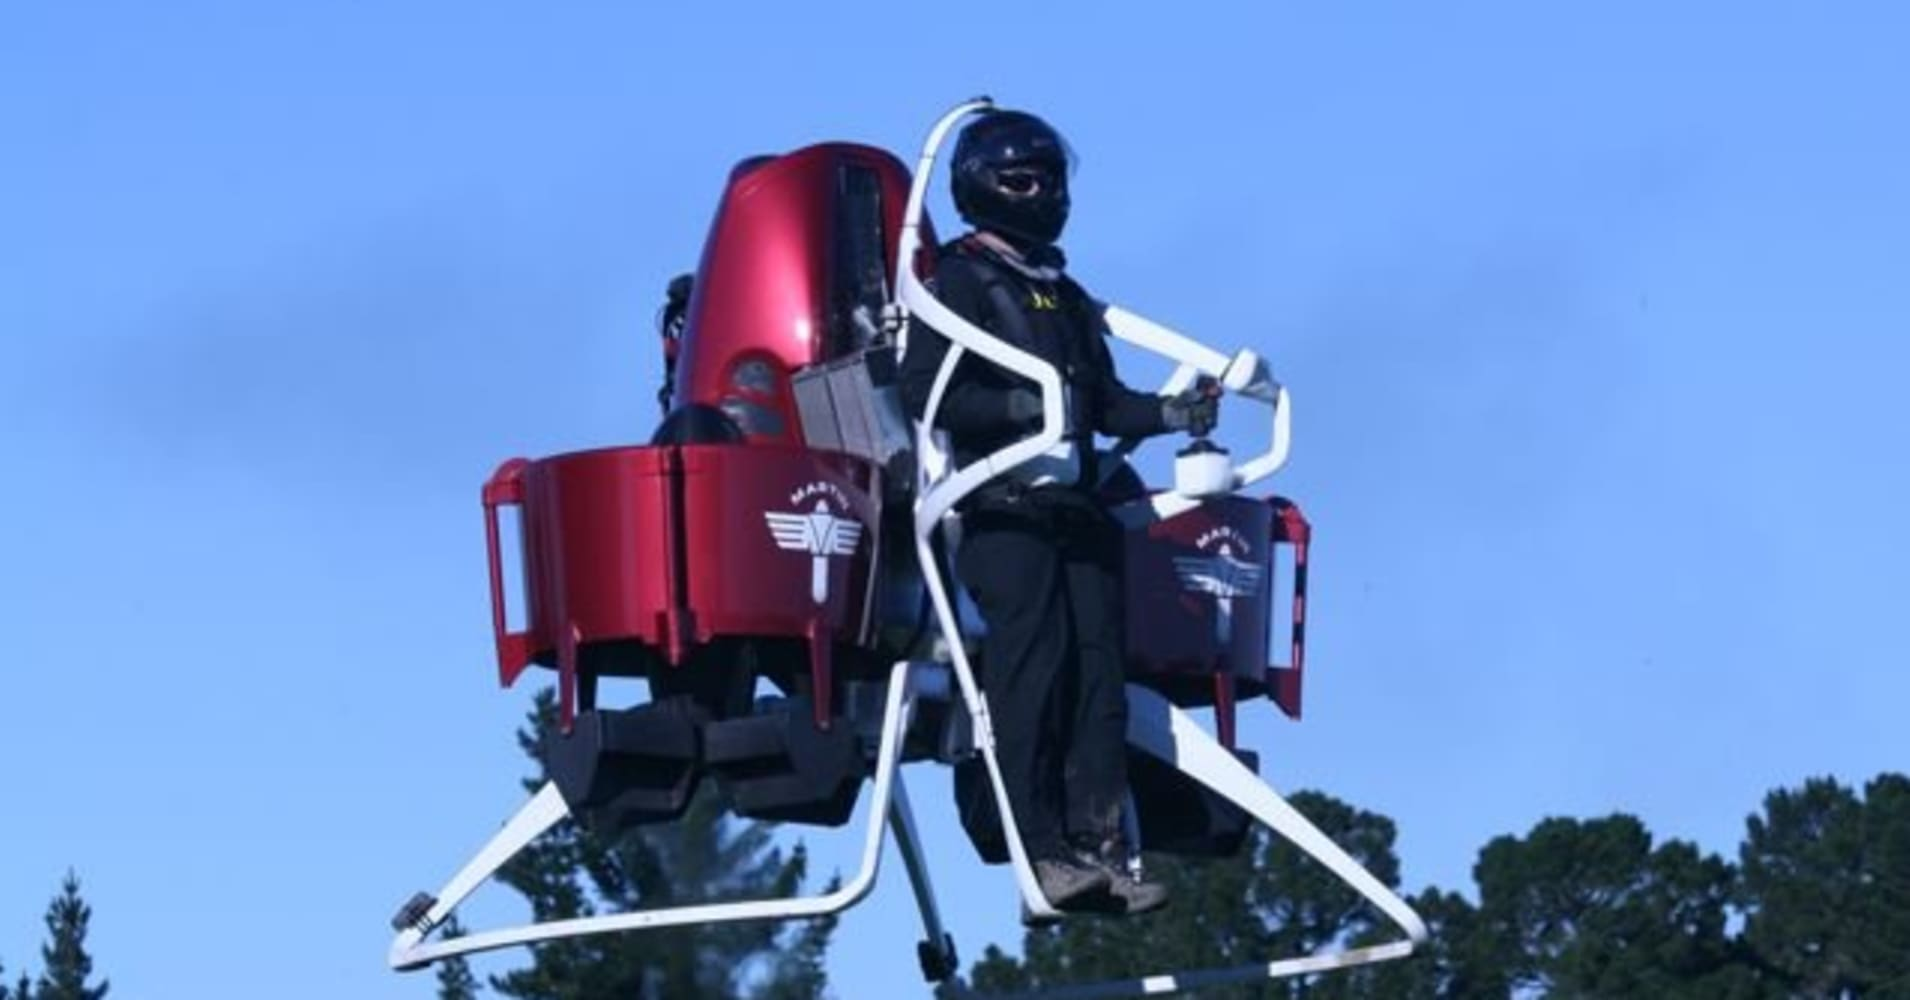 Ambulance For Sale >> $250K jetpack for police sees interest from Dubai